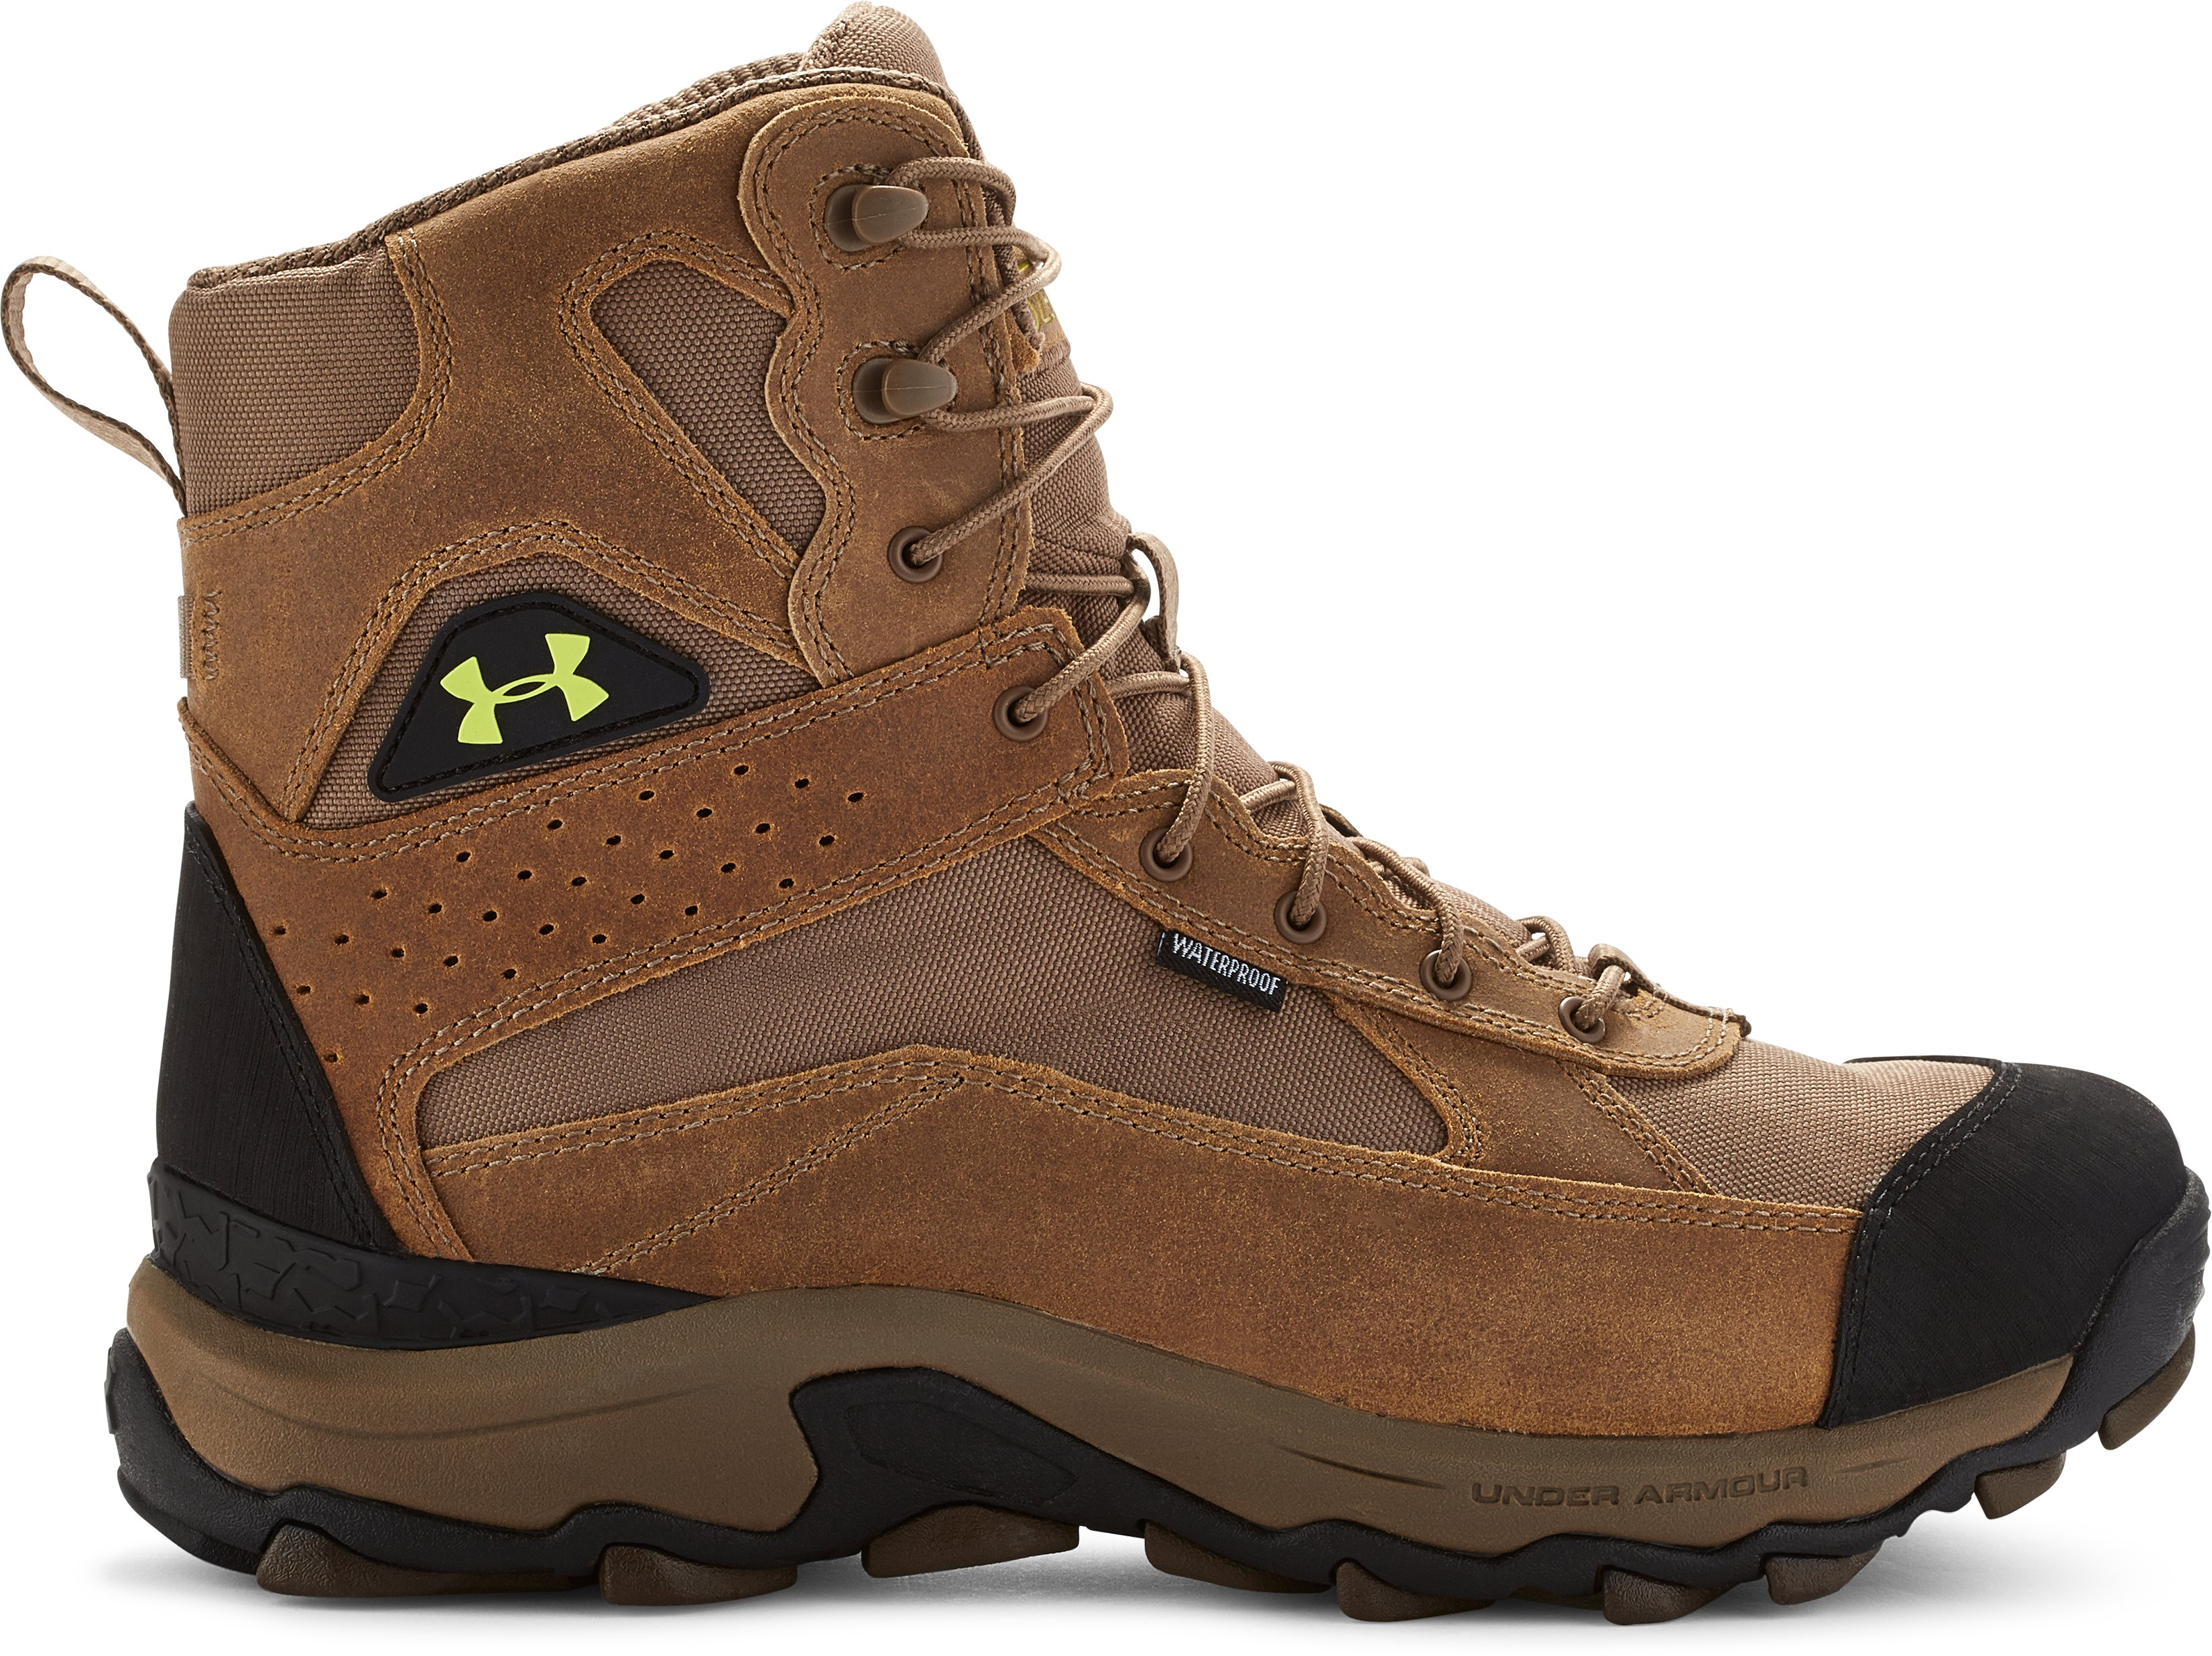 Men's UA Speed Freek Bozeman 600 Boots, Uniform,